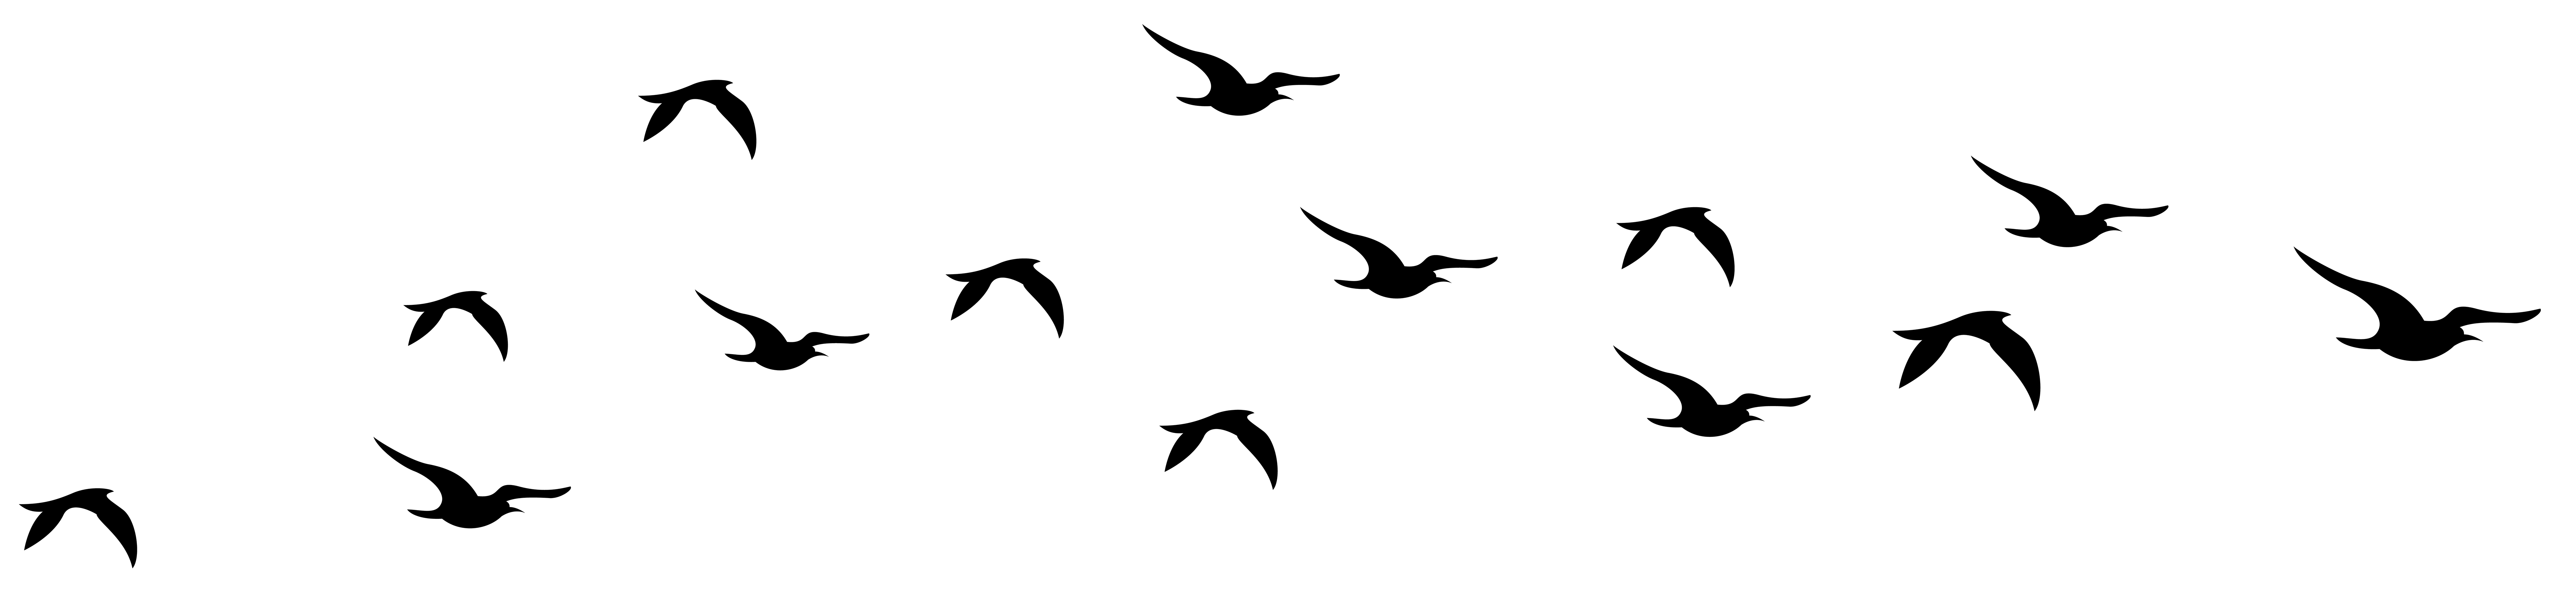 bird silhouette clip art at getdrawings com free for personal use rh getdrawings com flying birds clipart png flying birds clipart